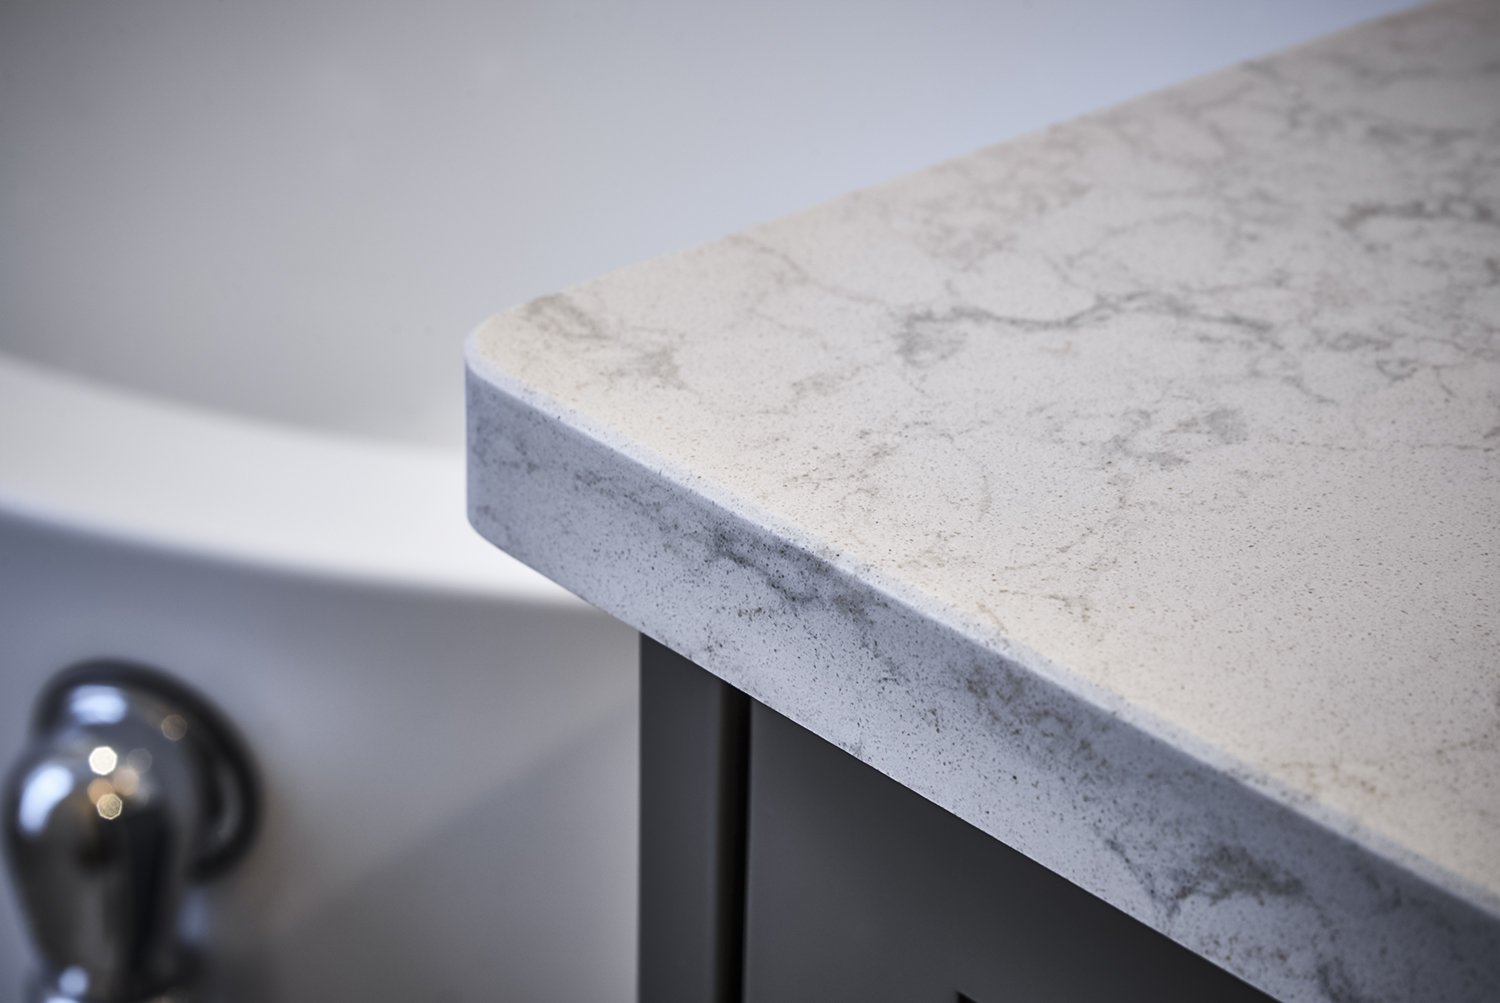 Pretty Grey & White Master Bathroom quartz counter top detail shot